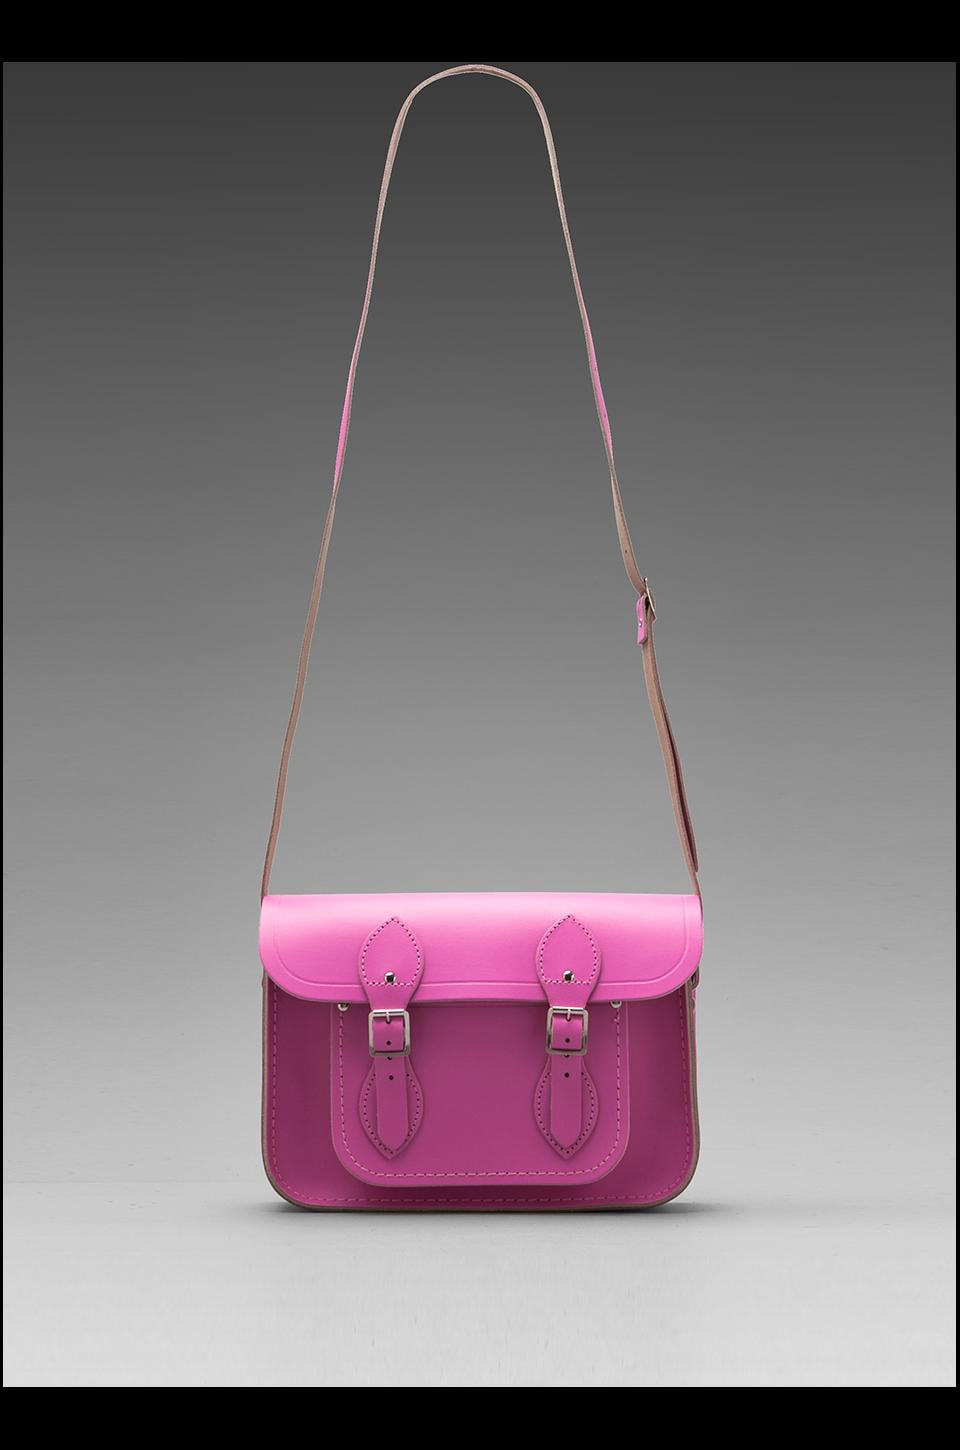 "The Cambridge Satchel Company Core Collection Mini 11"" Satchel in Pink"